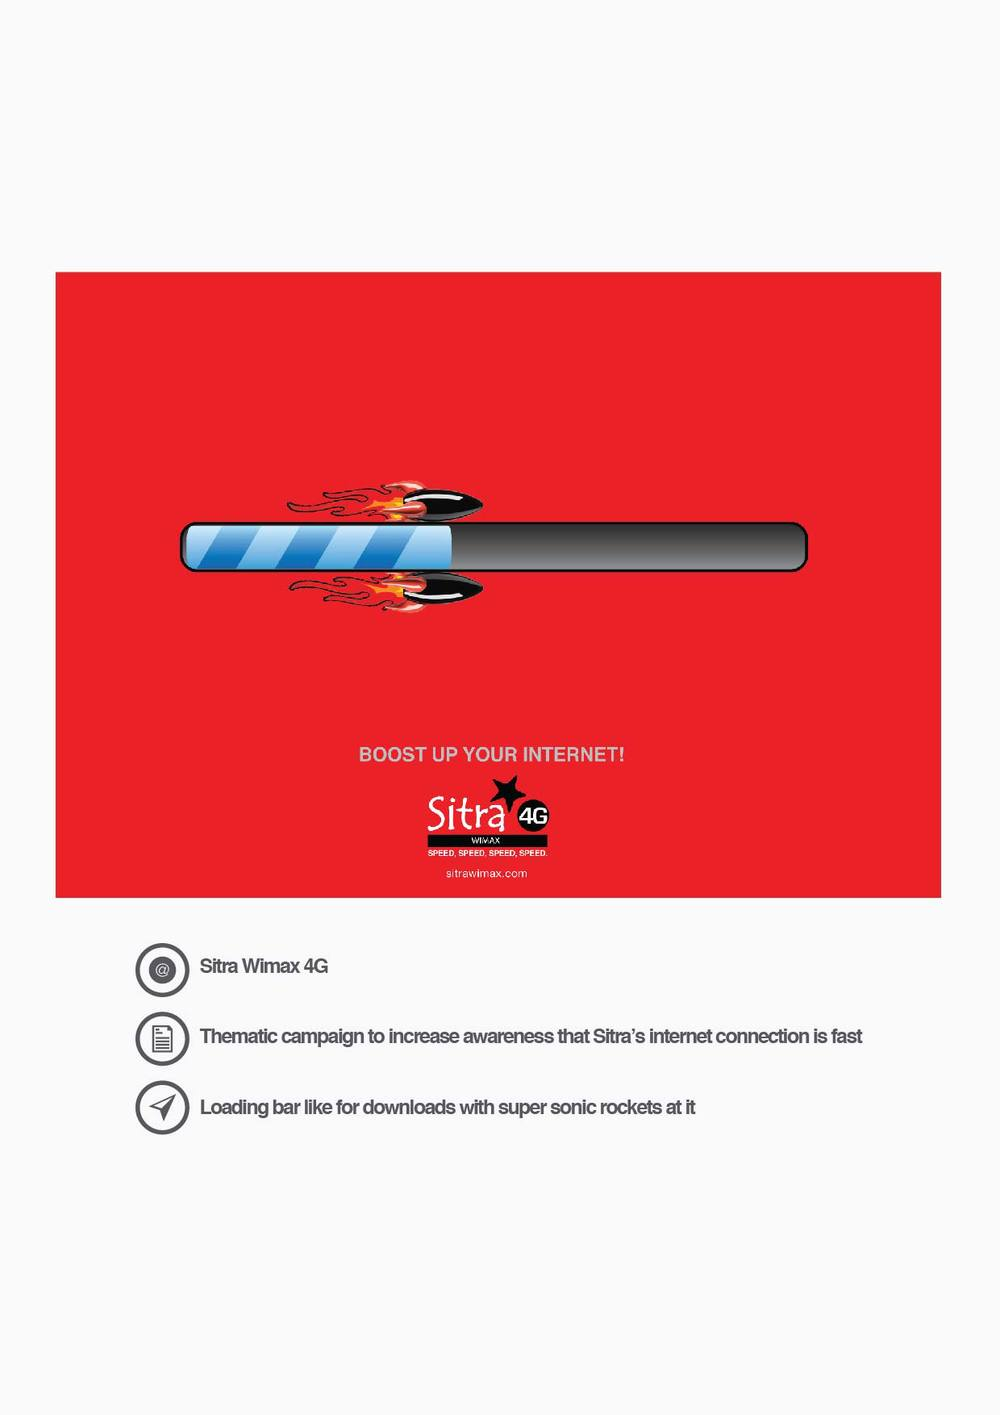 Sitra Wimax 4G Thematic campaign to increase awareness that Sitra's internet connection is fast